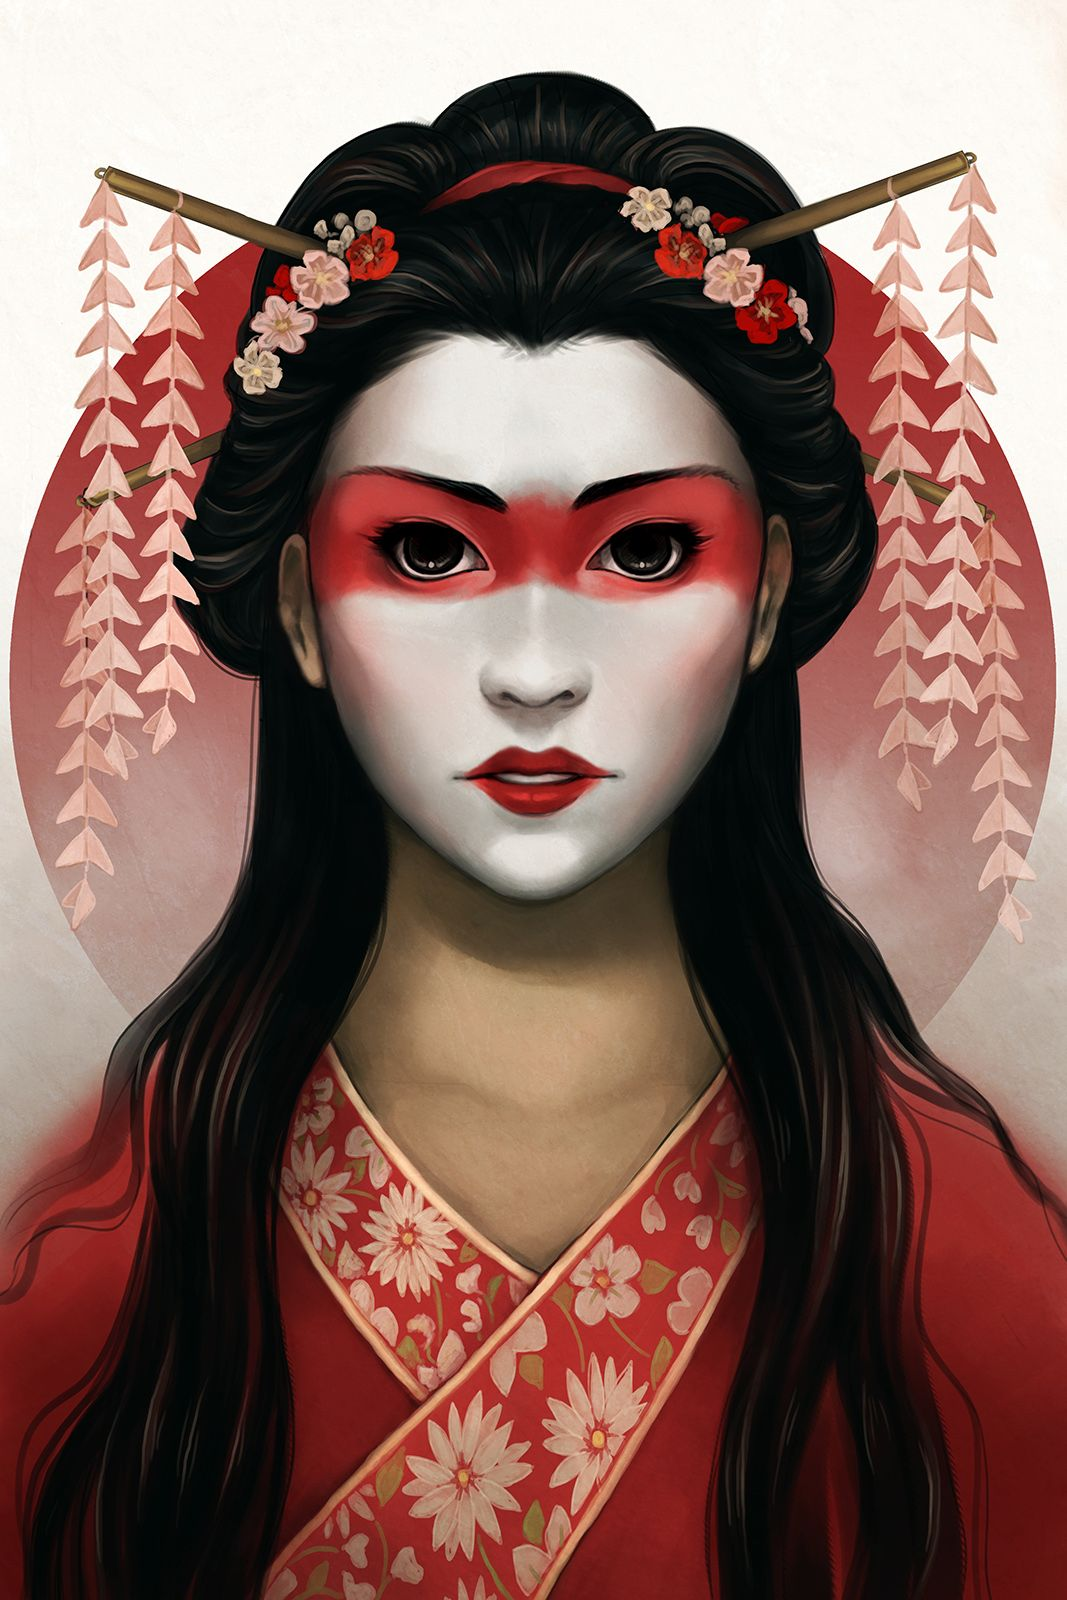 Amaterasu By Danielle Sylvan Printed On 12 X18 Glossy 80lb Cover